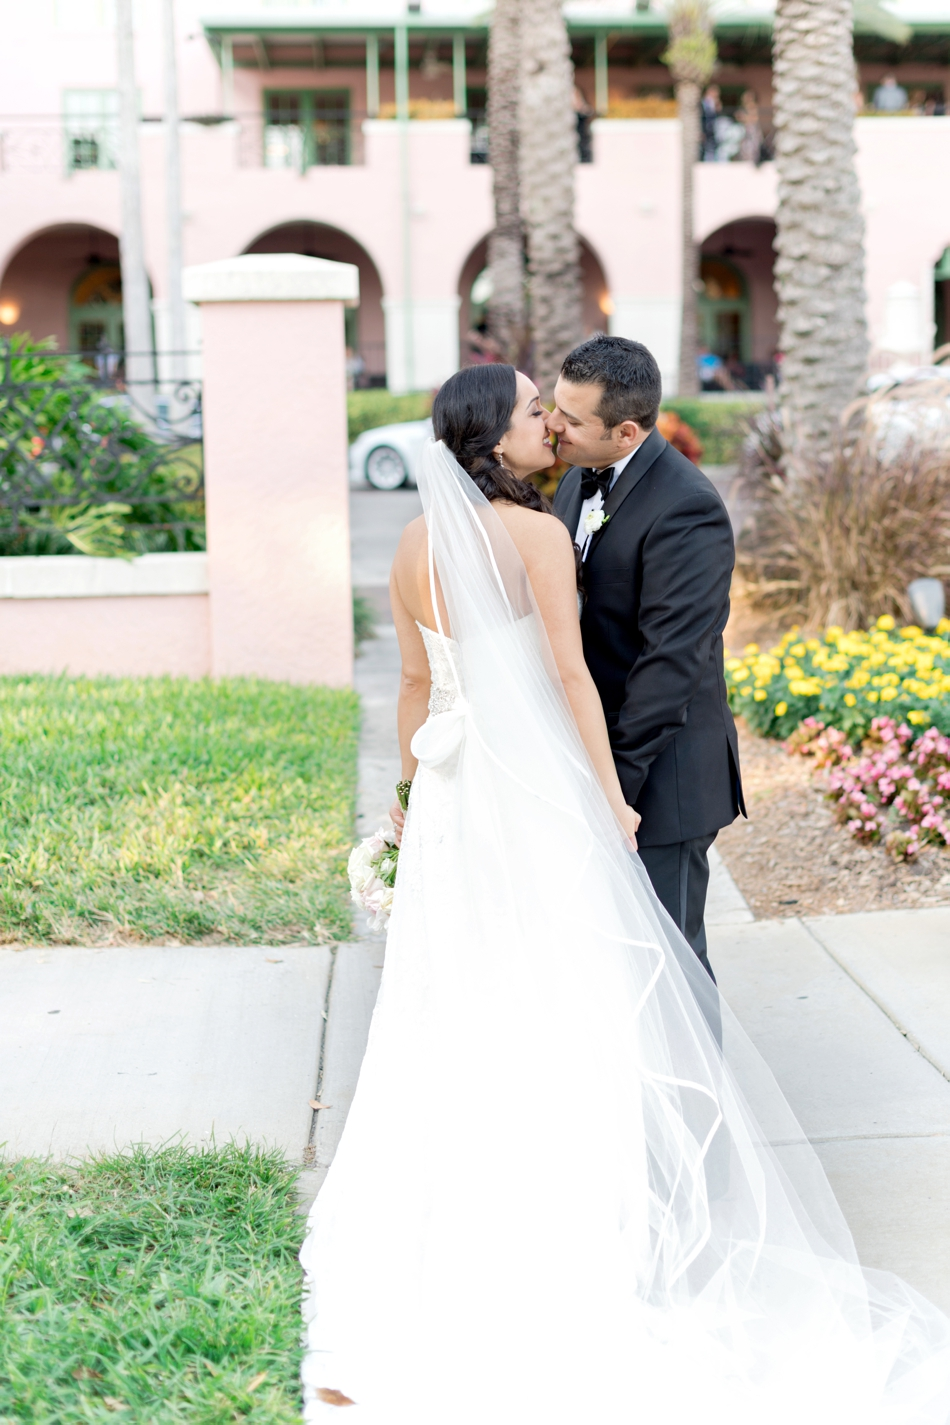 Renaissance vinoy wedding